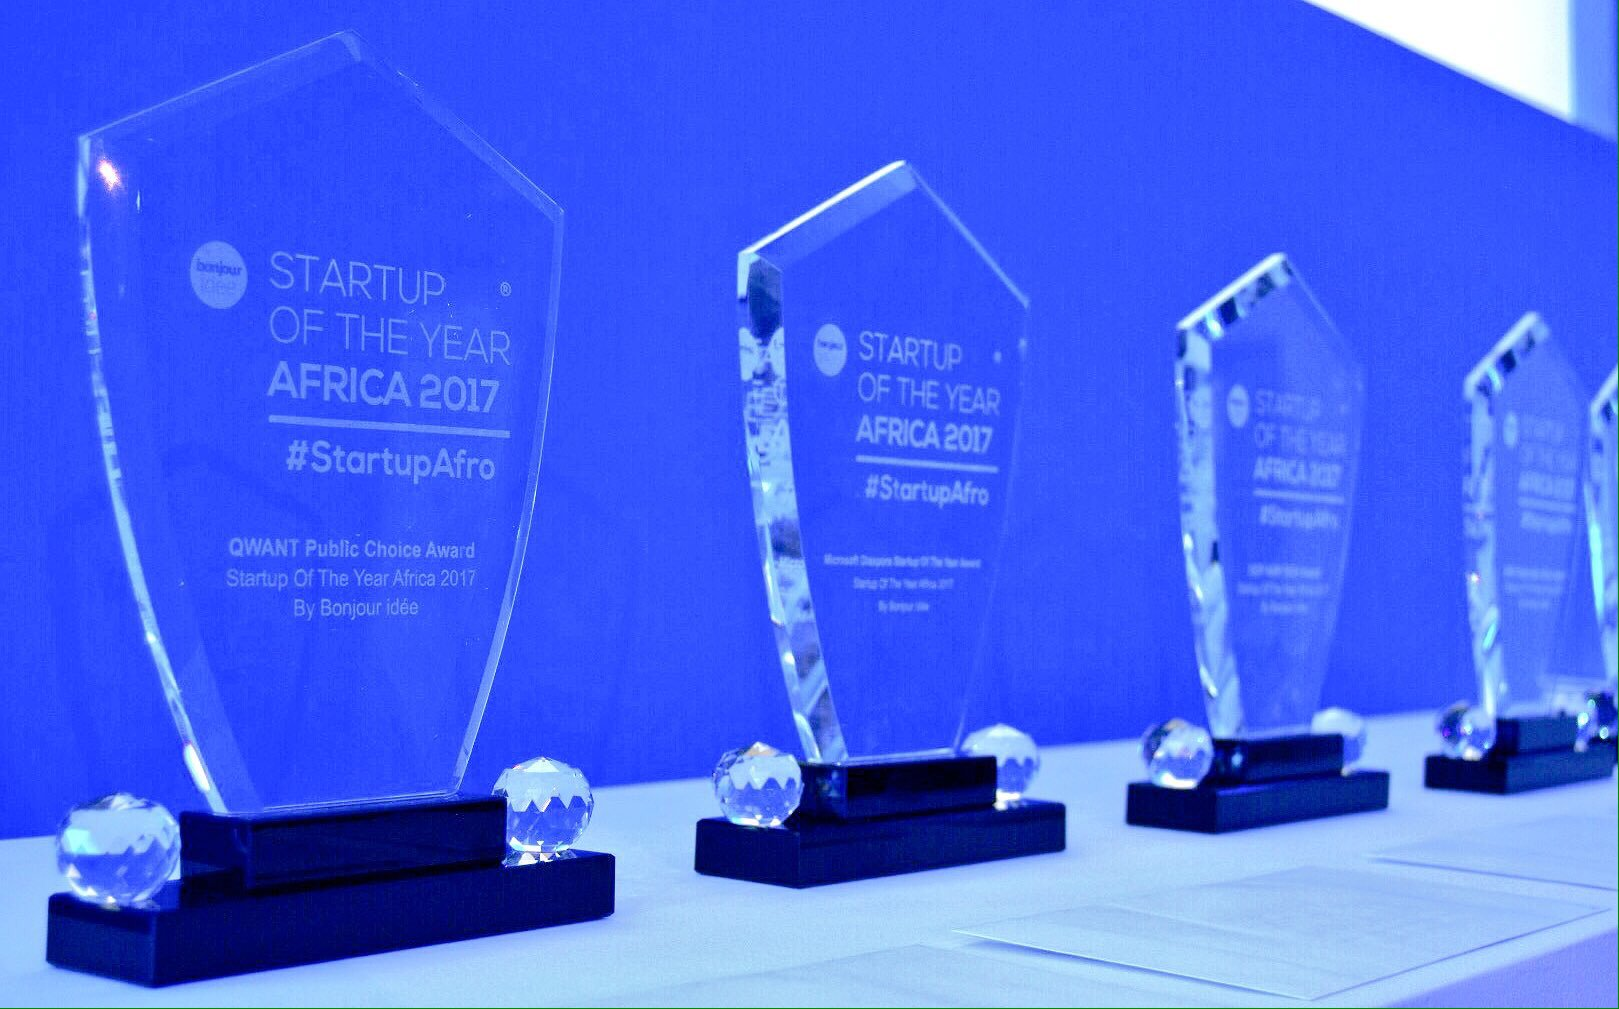 Apply for the Startup of the Year Africa Award 2018 (Over €50,000 in prizes)